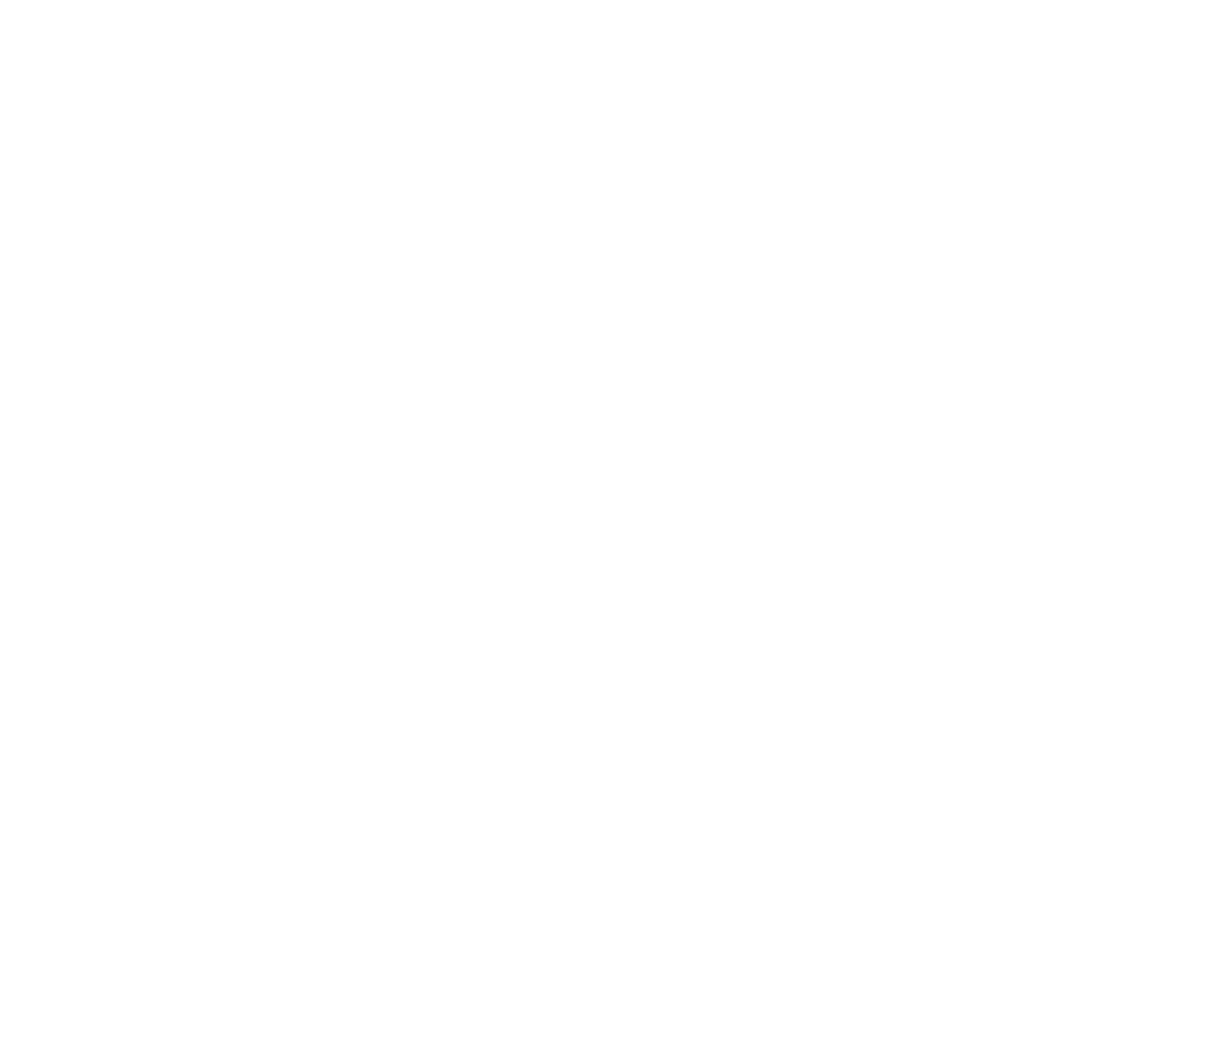 Colton Williams